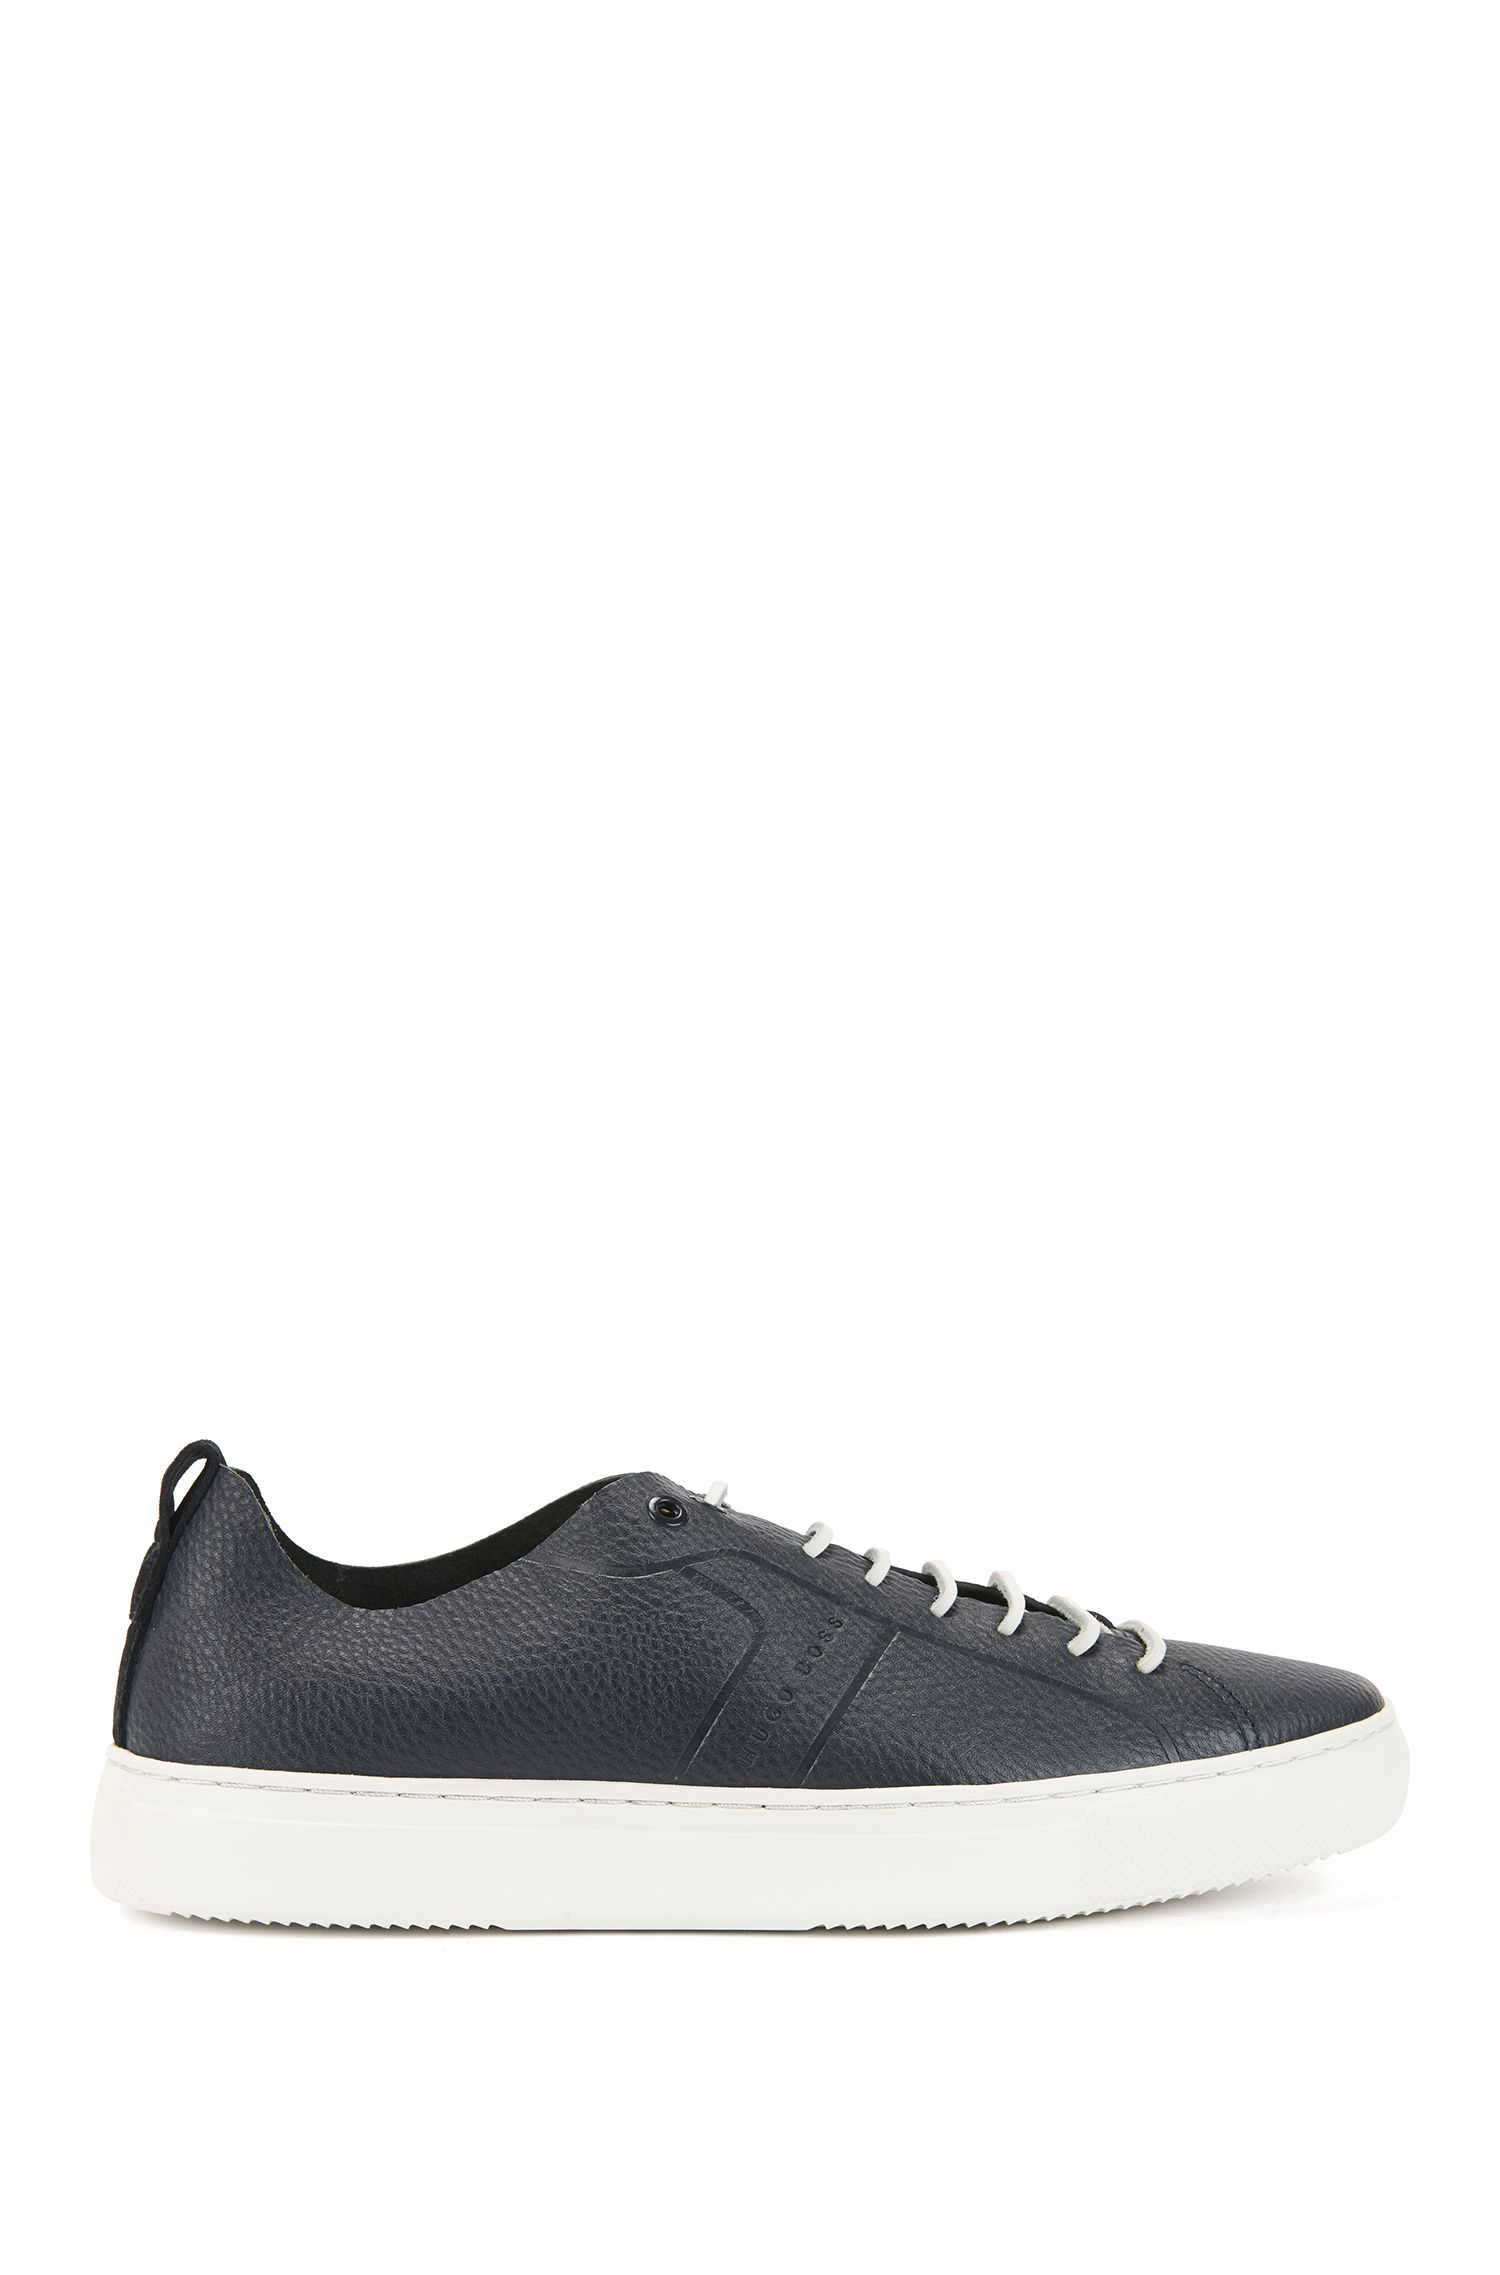 Tennis-style sneakers in tumbled calf leather